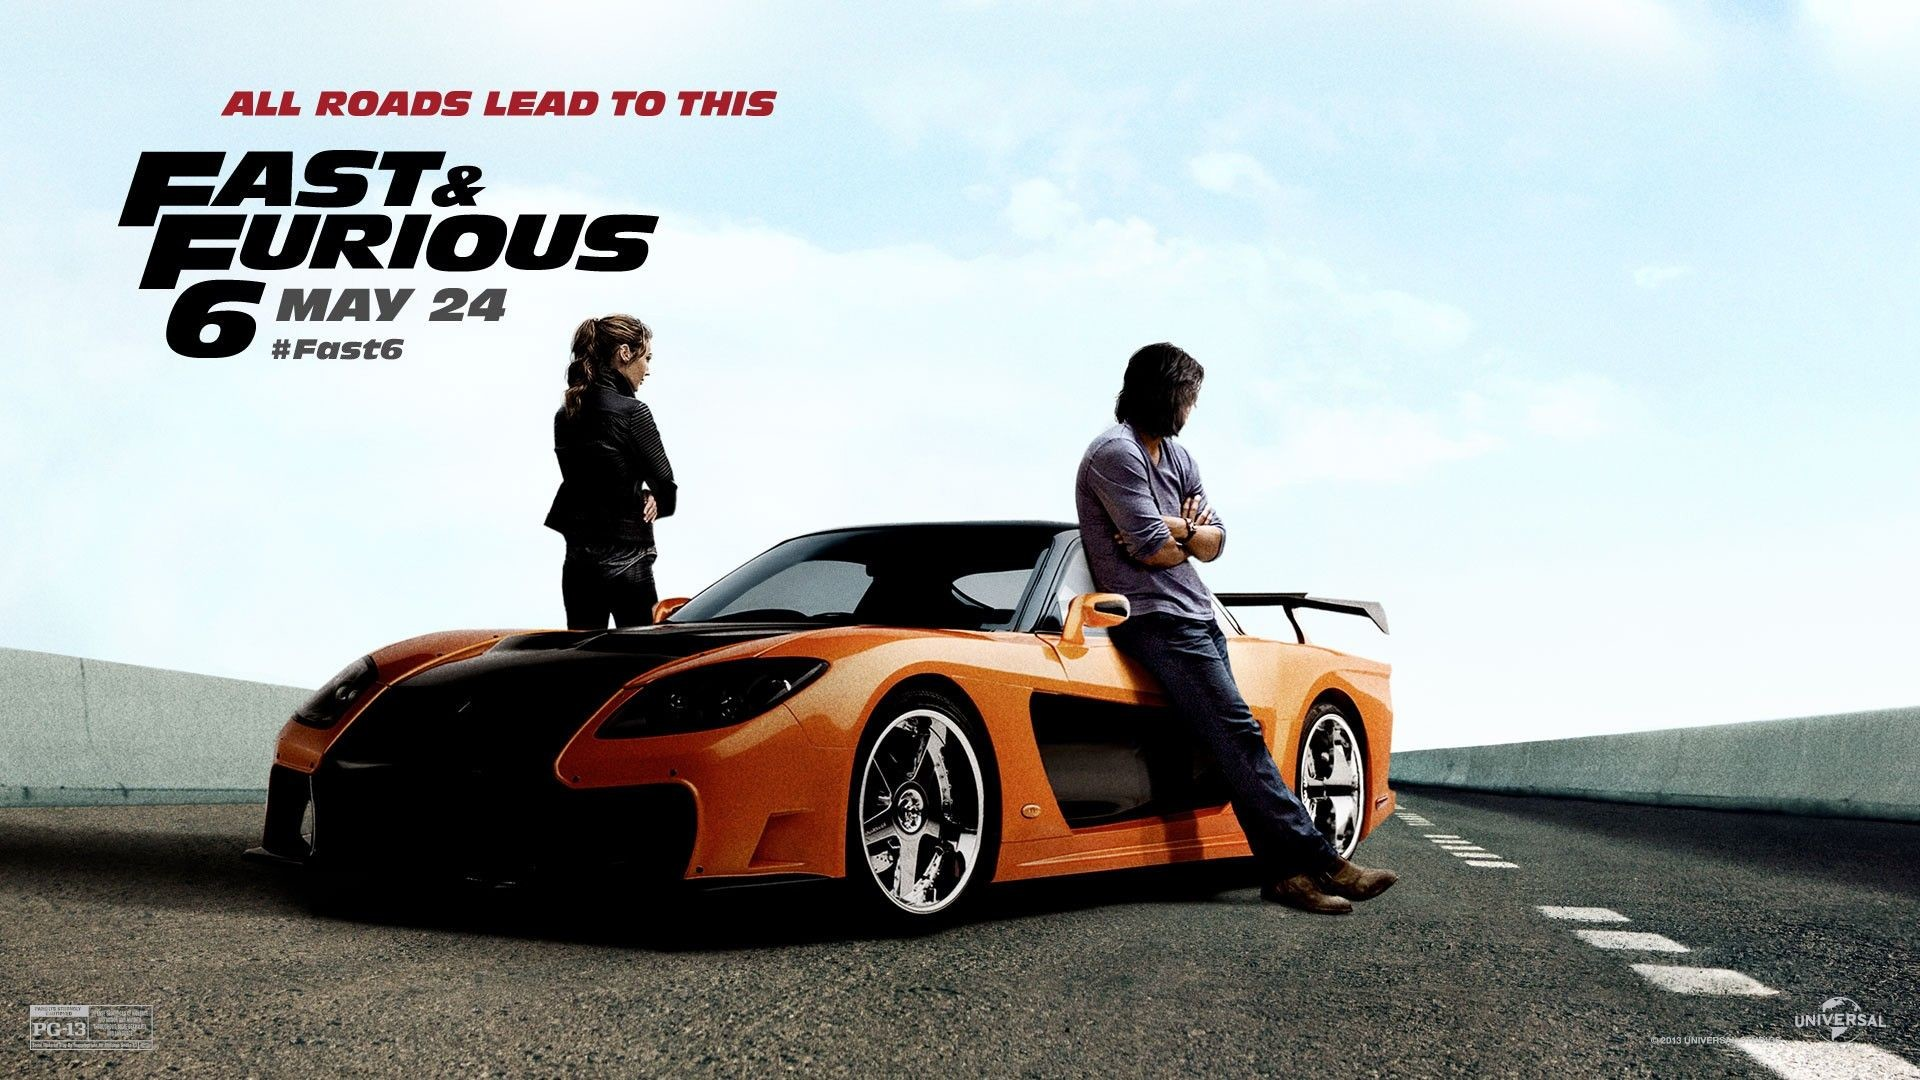 Han Fast And Furious 1757182 Hd Wallpaper Backgrounds Download